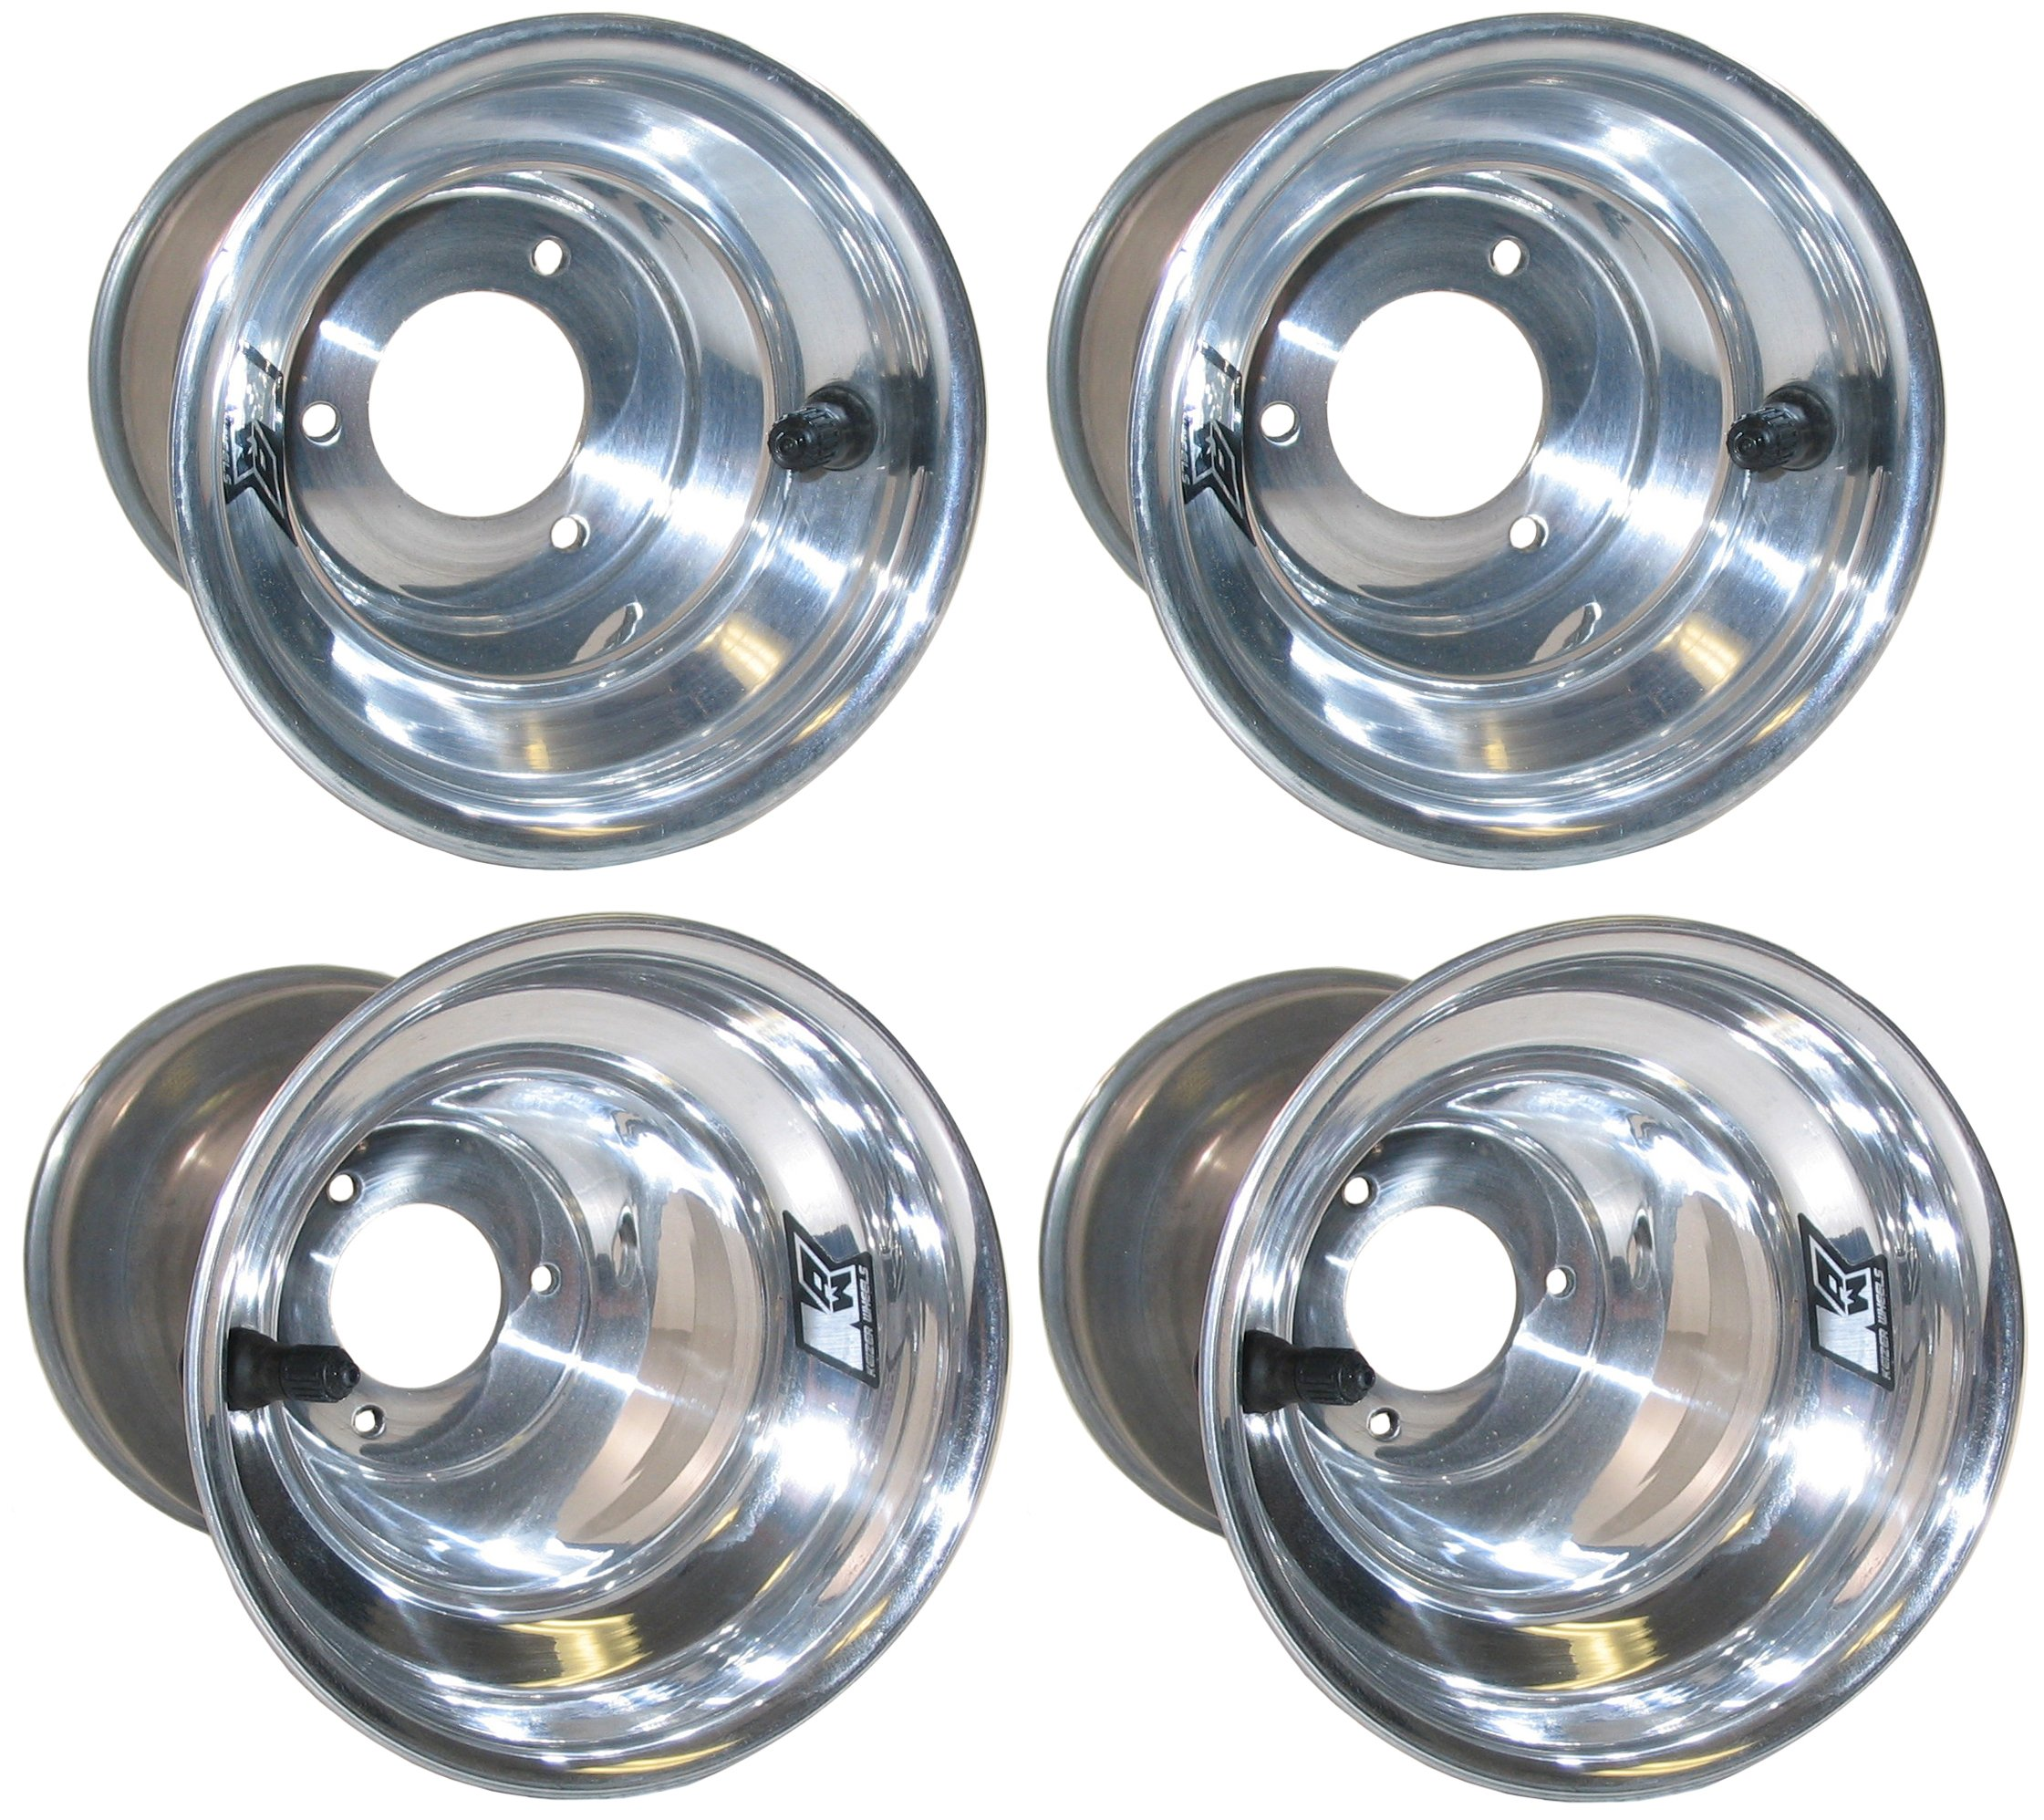 NEW KEIZER KW2 6'' ALUMINUM WHEEL SET FOR DIRT KARTING & QUARTER MIDGETS, POLISHED FRONTS & REARS, FOR DIRT GO CARTS, DIRT CHAMP KARTS, DIRT QUARTER MIDGETS, & SIMILAR APPLICATIONS